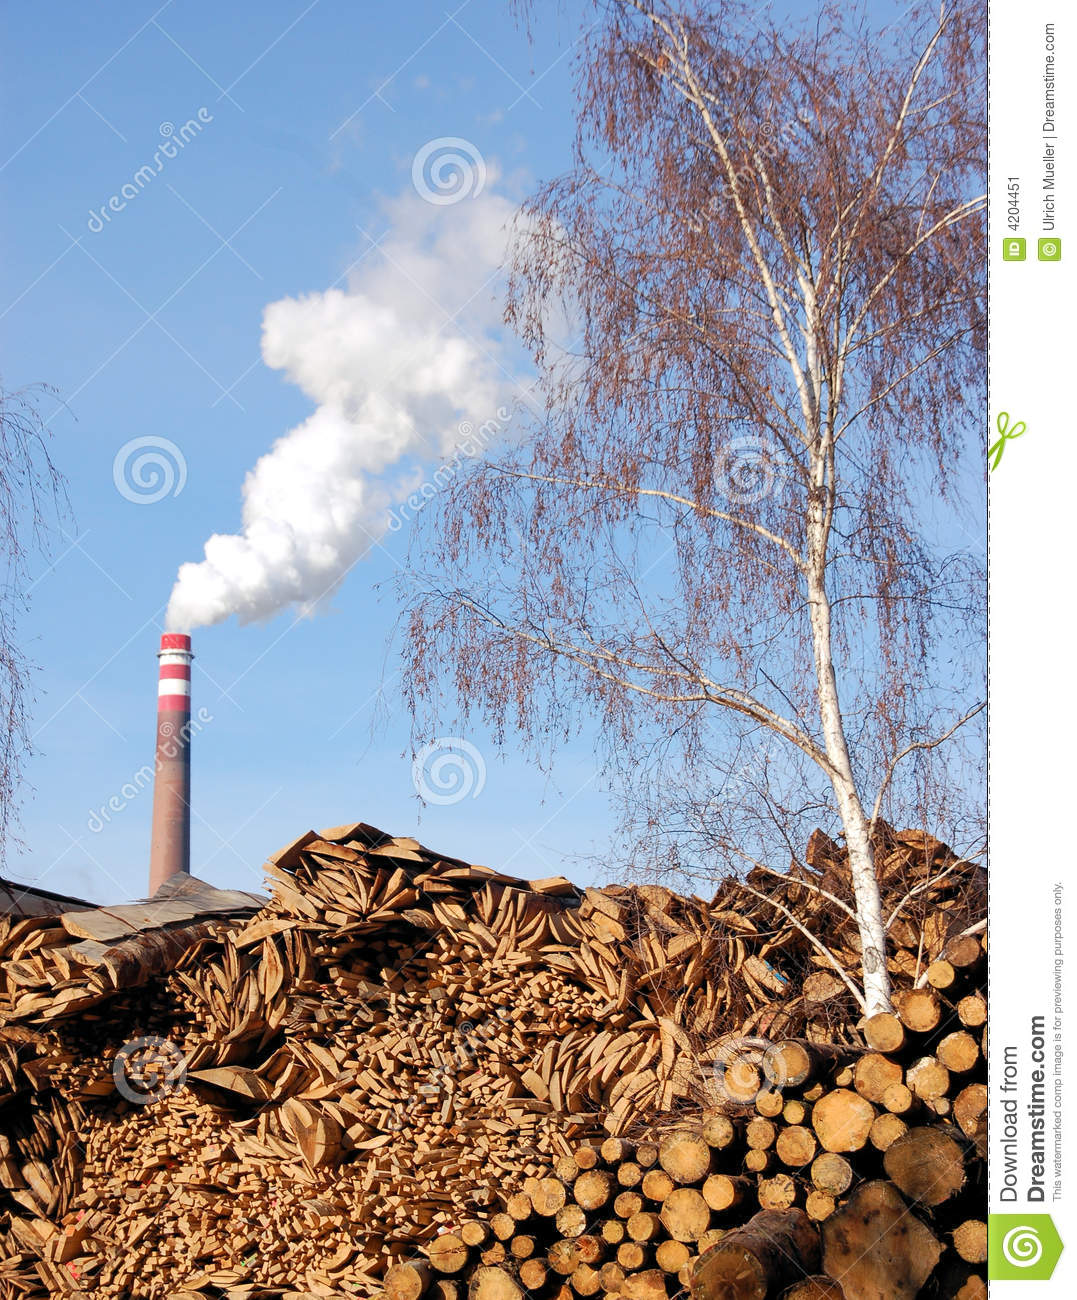 Wood and biomass plant